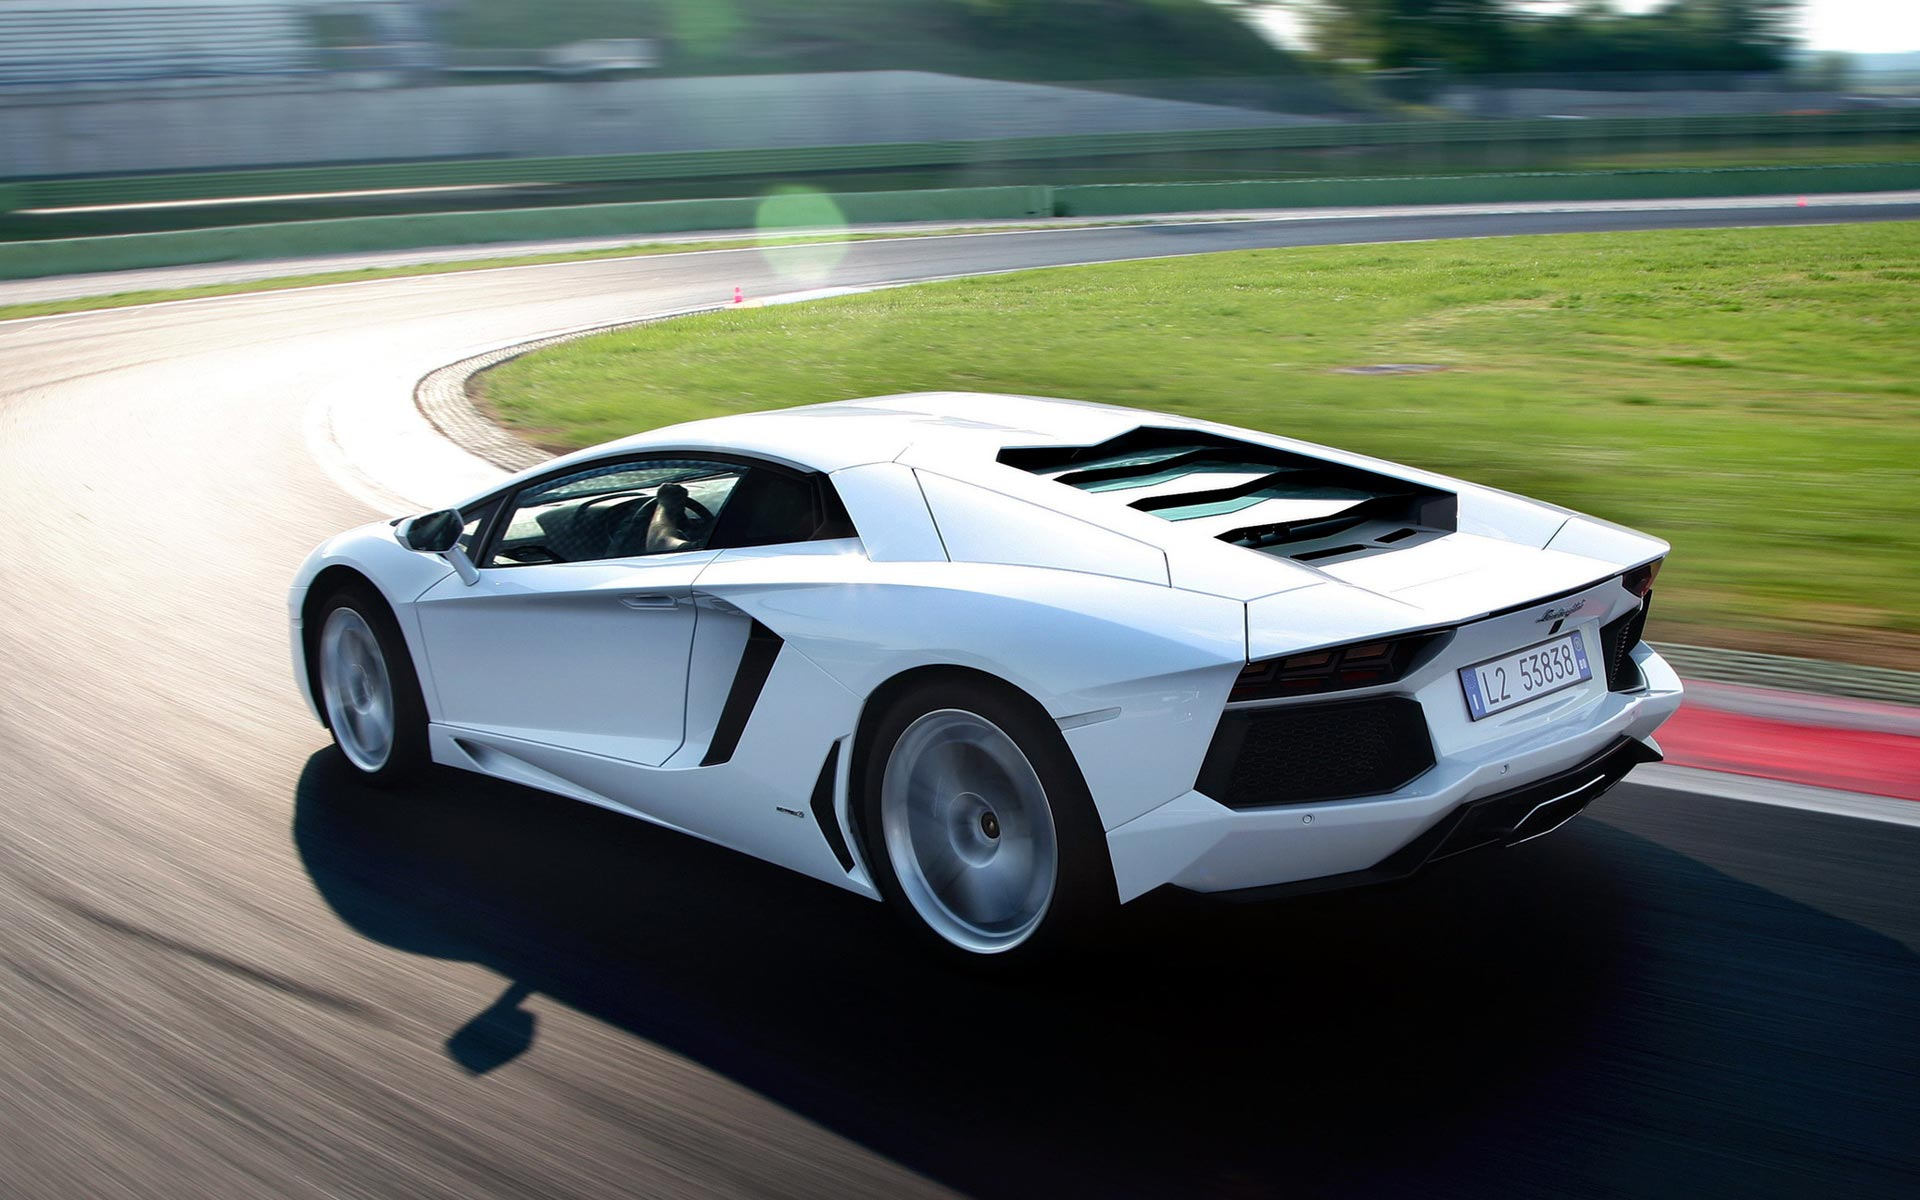 Lamborghini Aventador Dynamic Hd Widescreen HD wallpaper